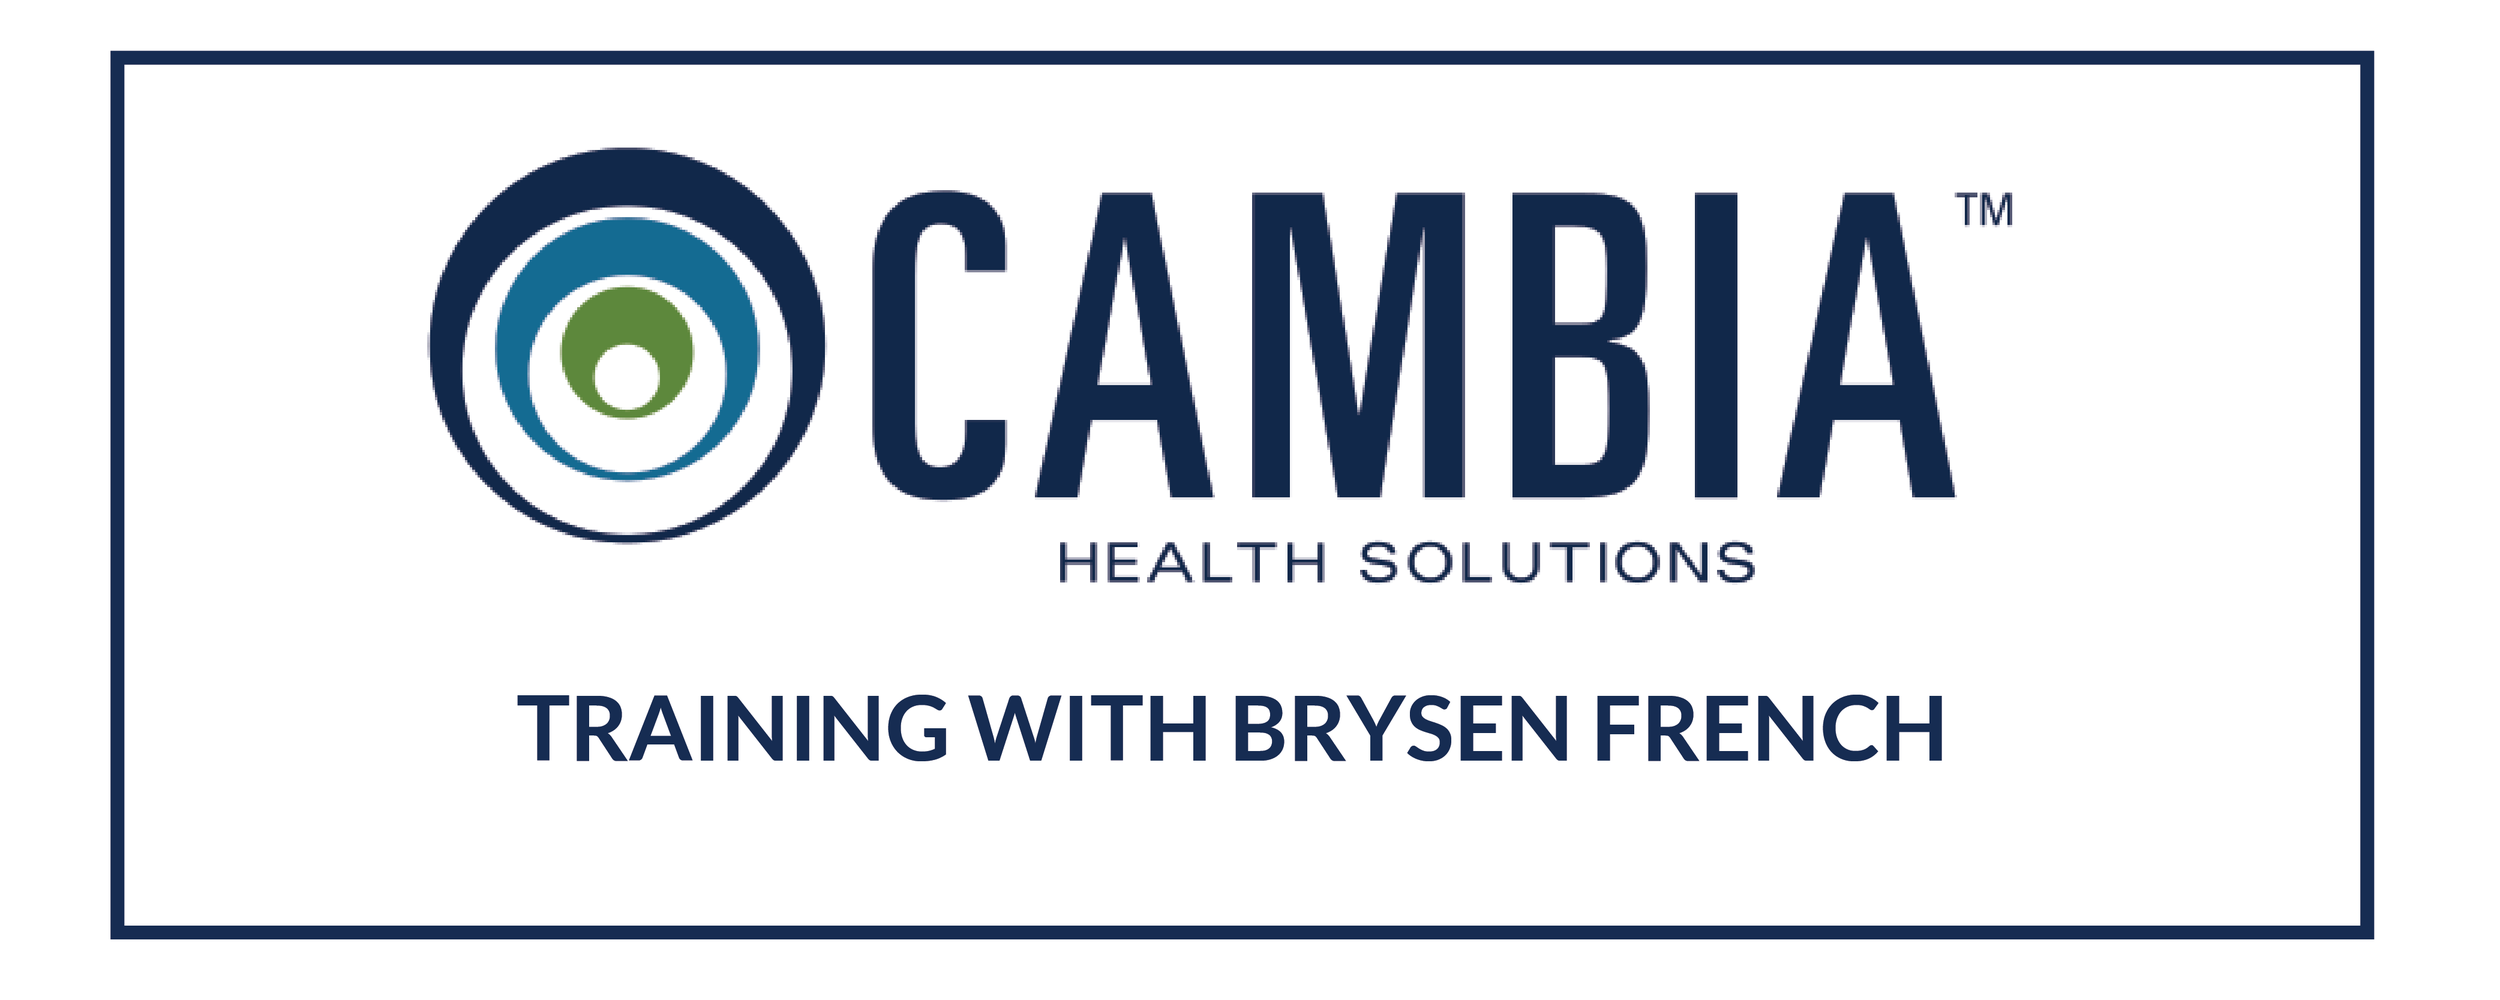 Cambia Health Solutions training with Brysen French WB.png